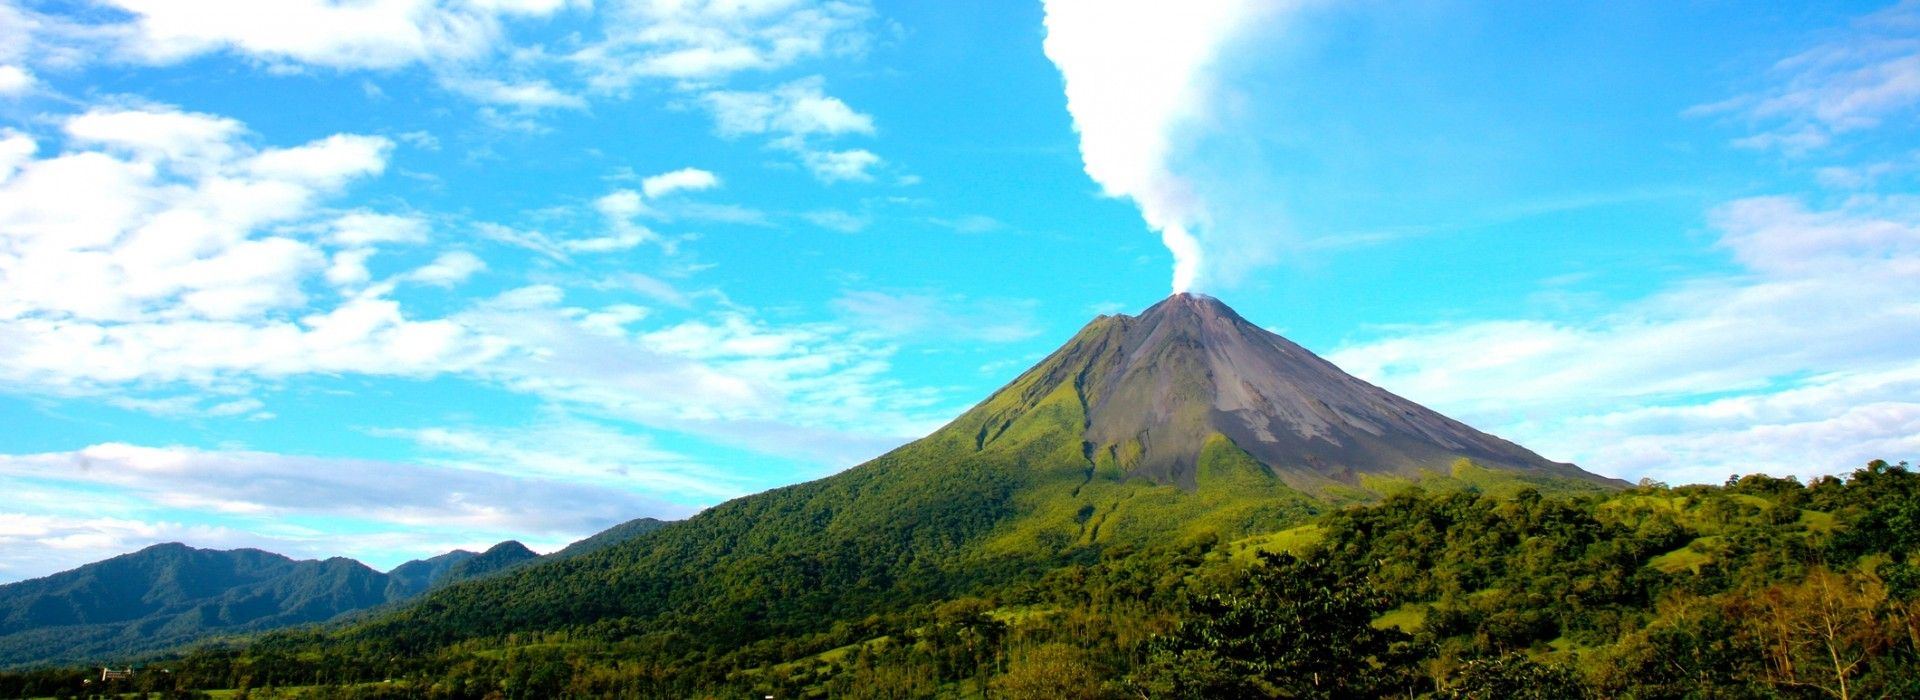 City sightseeing Tours in Costa Rica